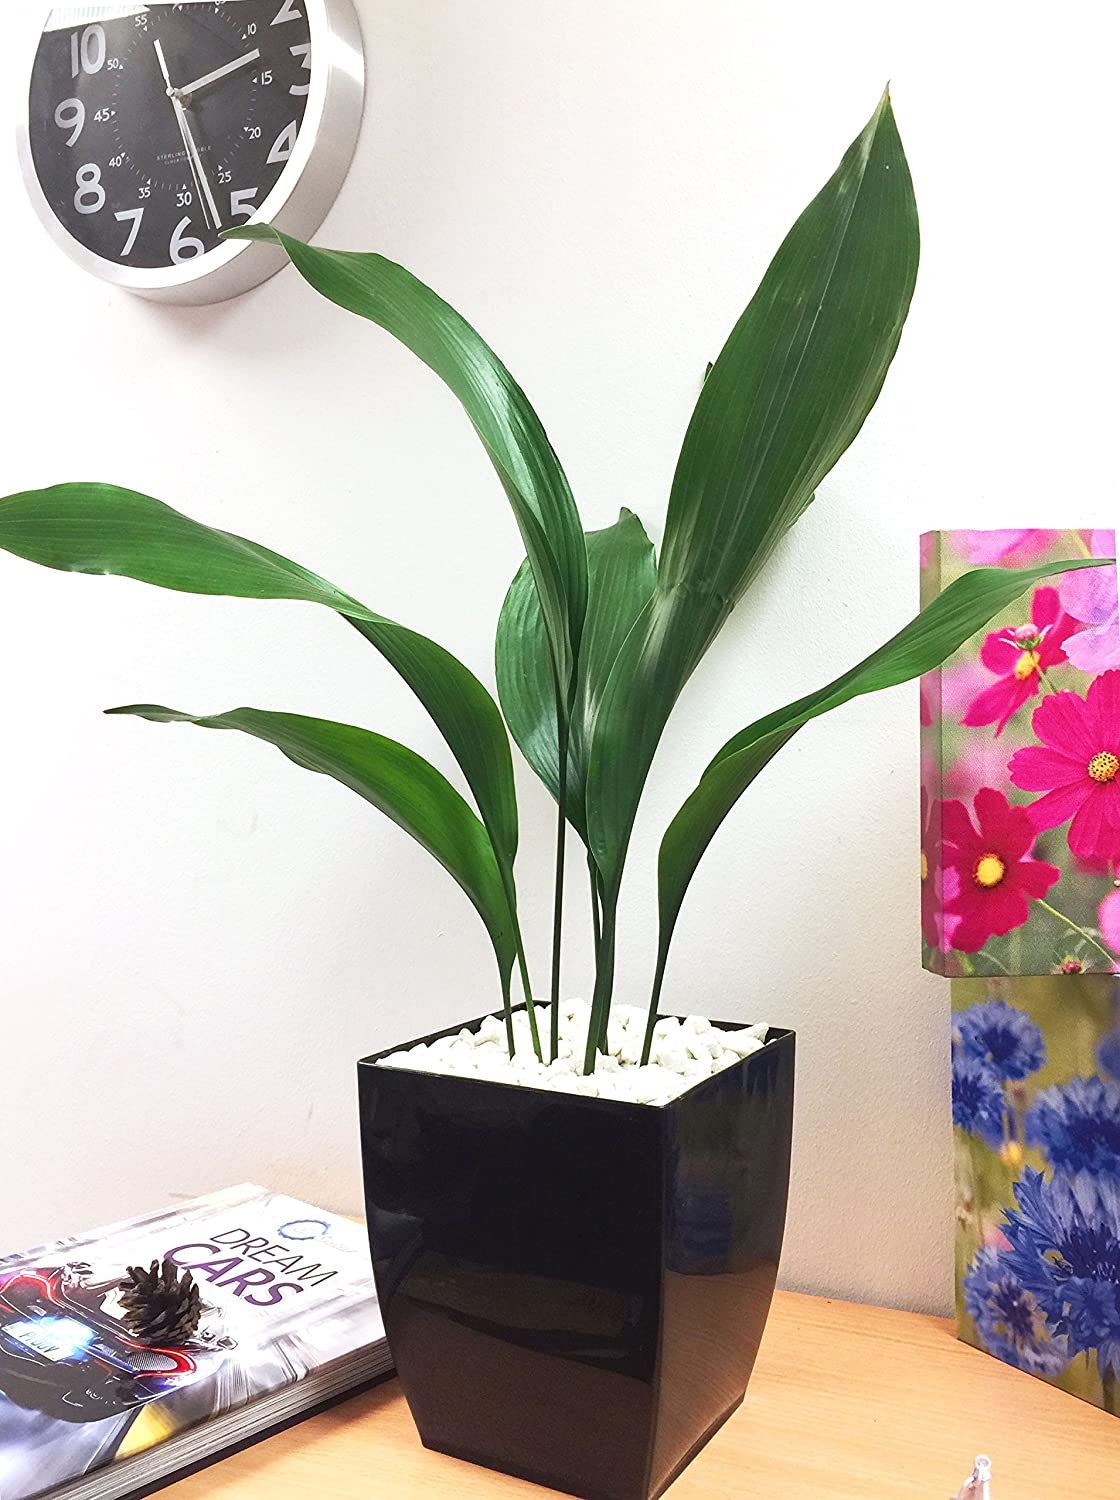 Easy Plants® Cast Iron Plant Common Aspidistra Table Plant @ Gloss Black Milano Square Pot